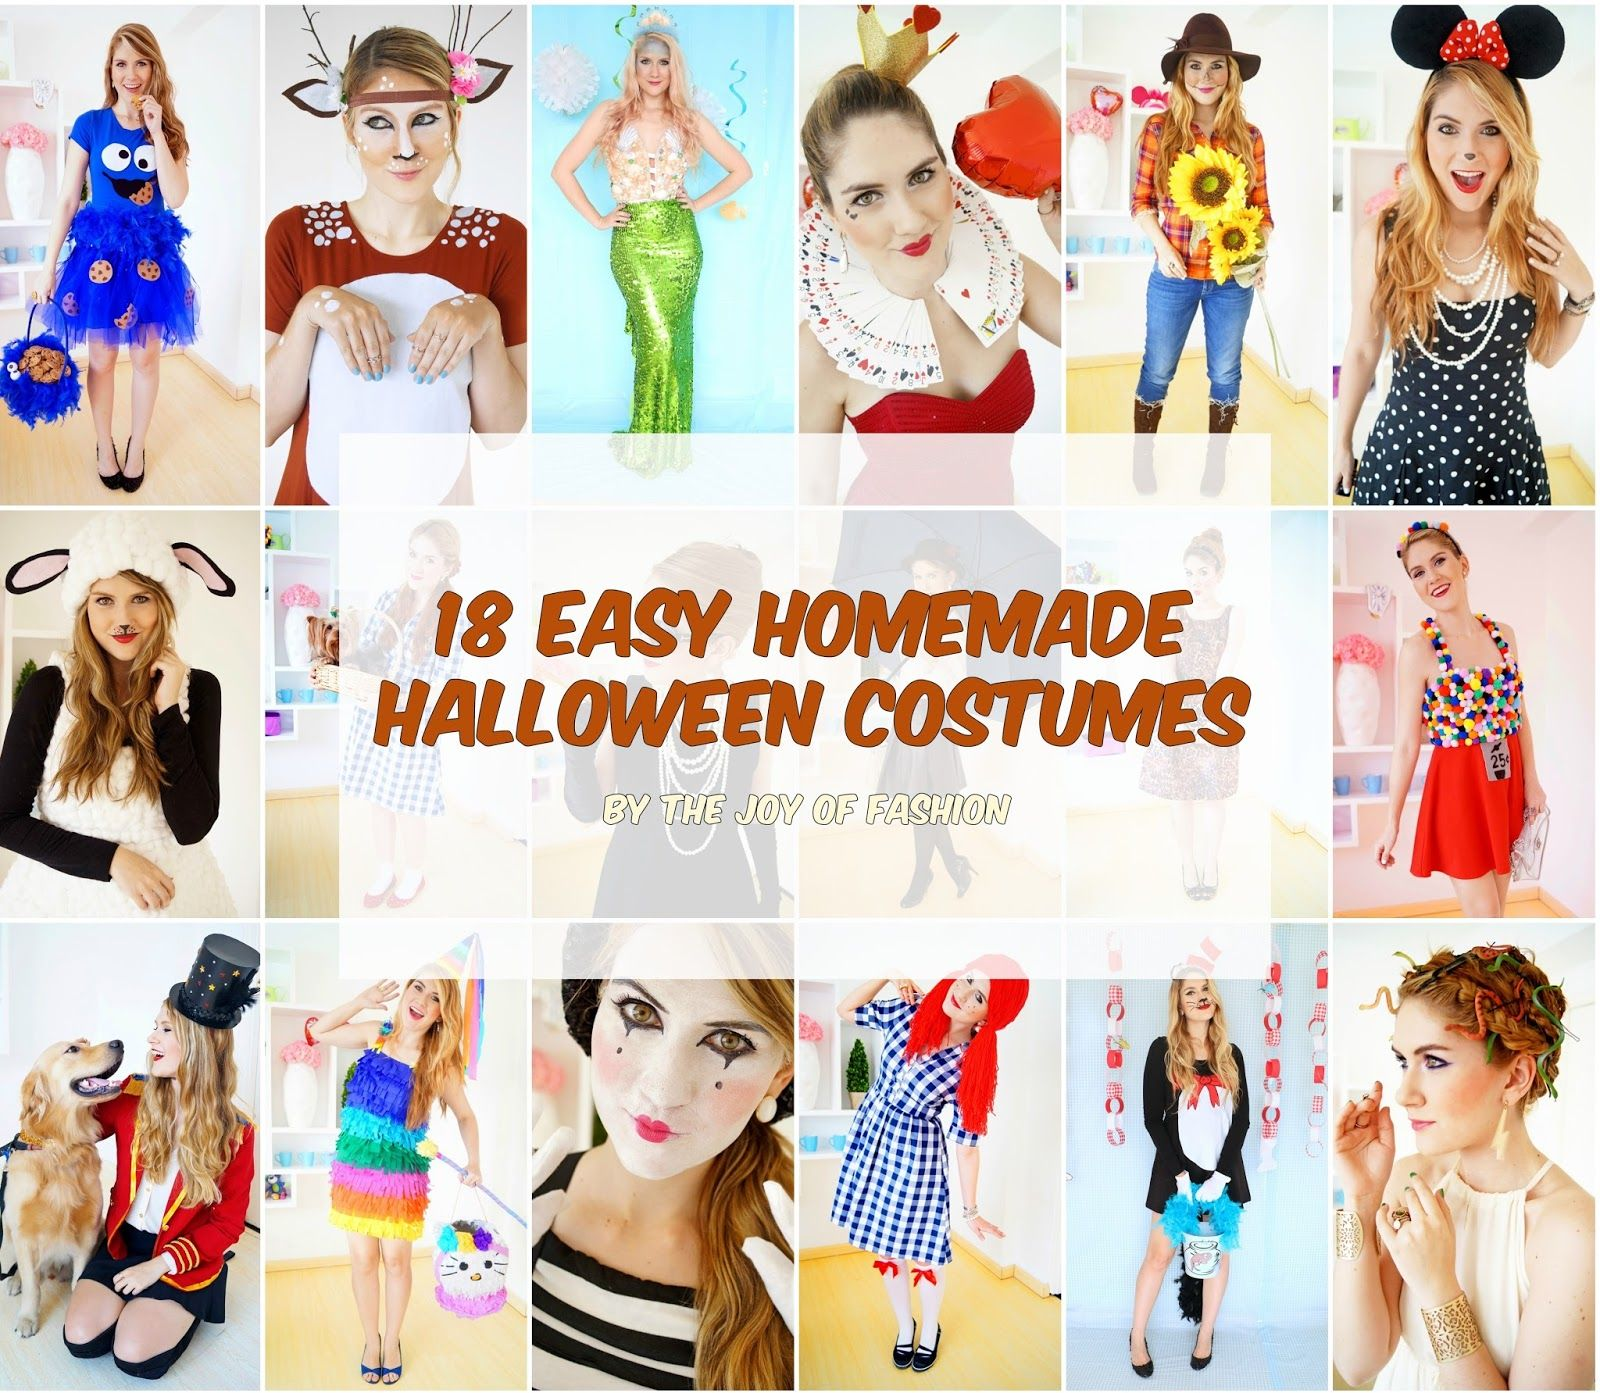 Easy Homemade Halloween Costume Ideas | Get Crafty | Pinterest ...